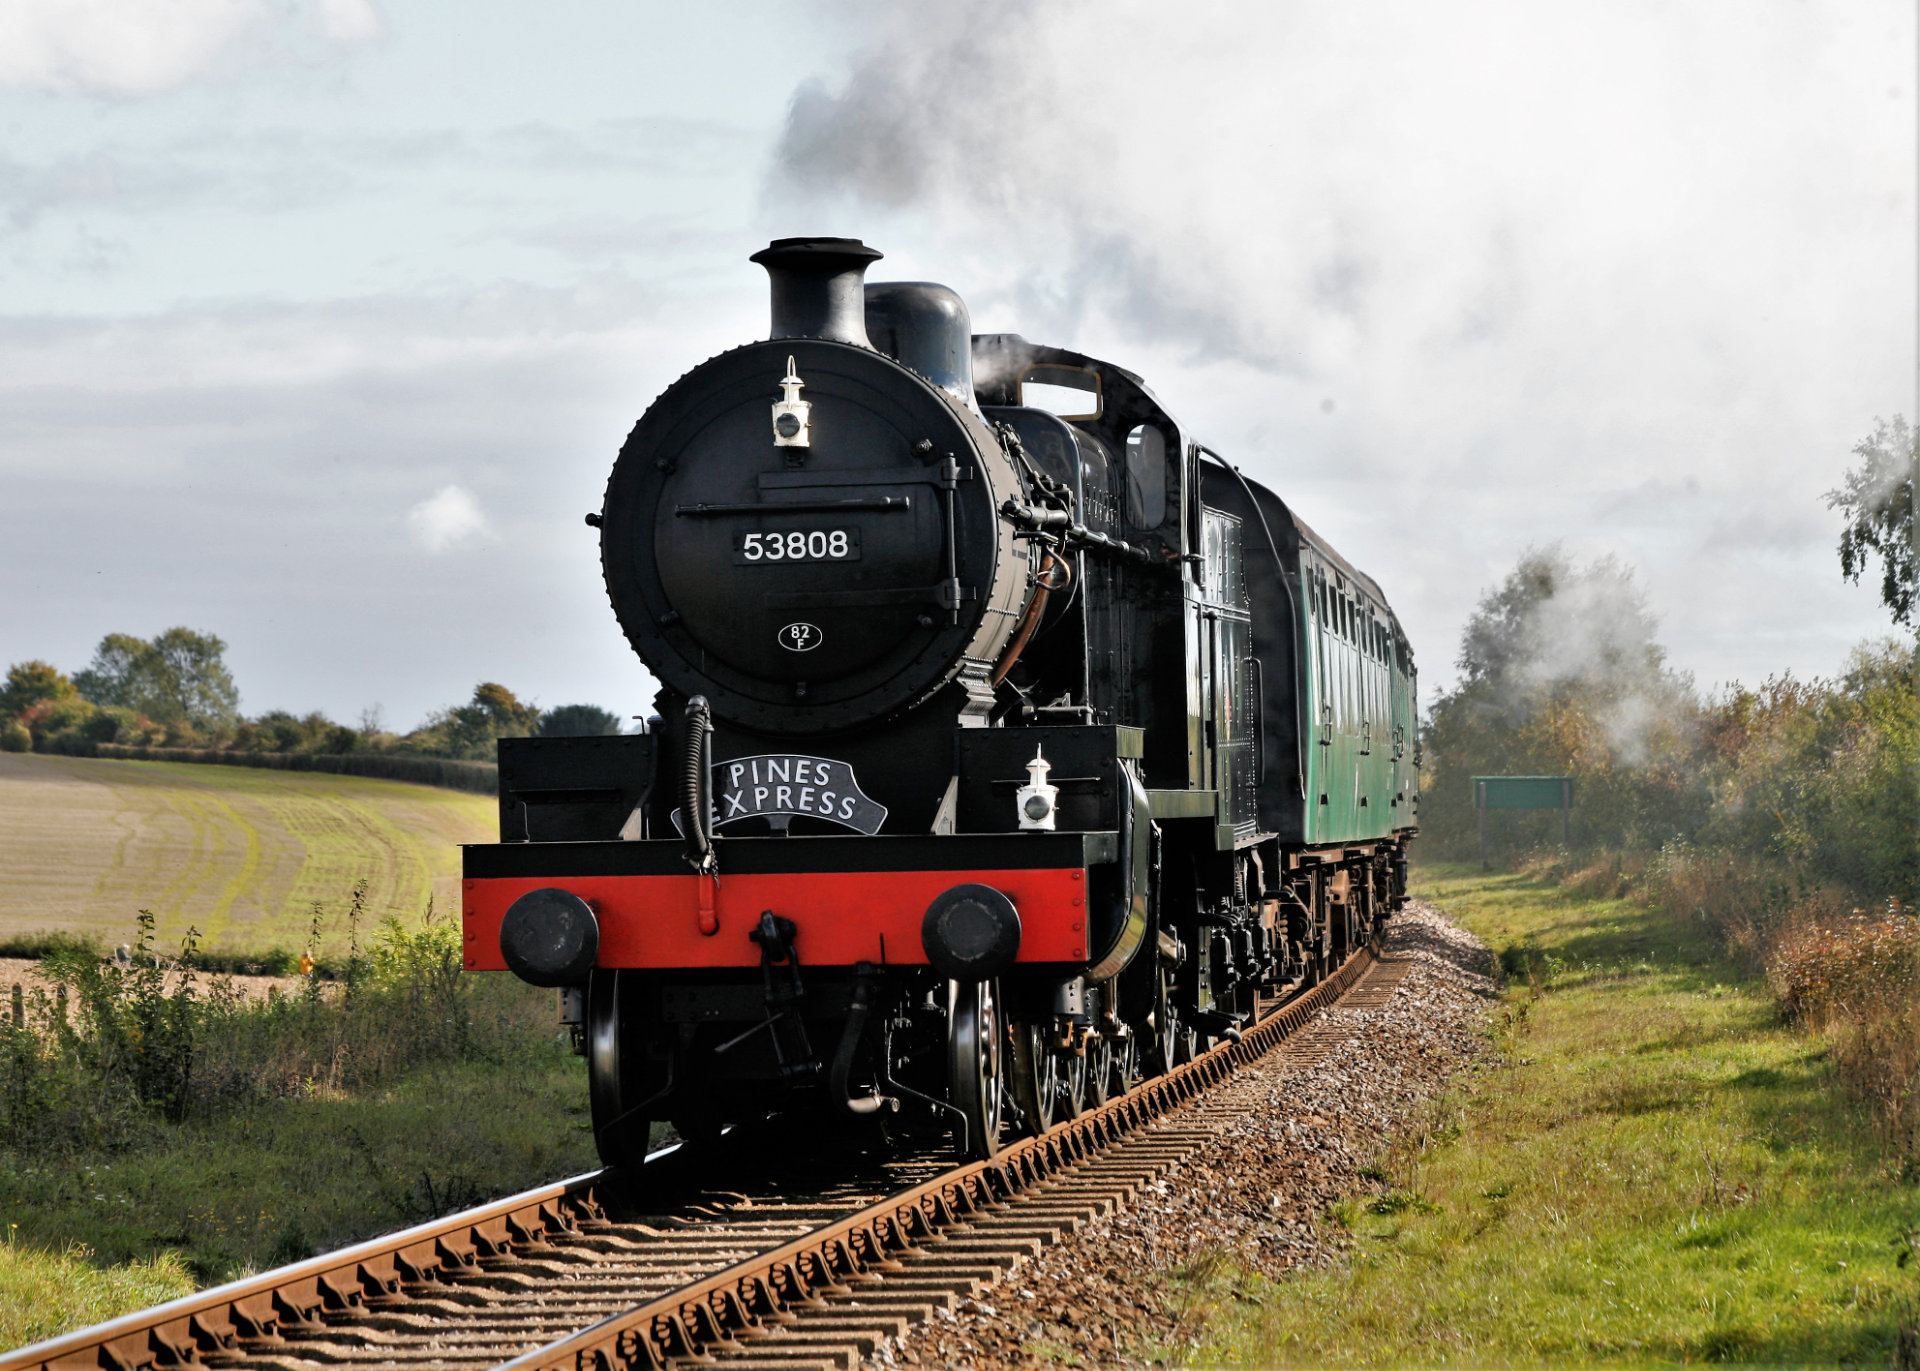 53808 on the Watercress Line, 16 October 2020.